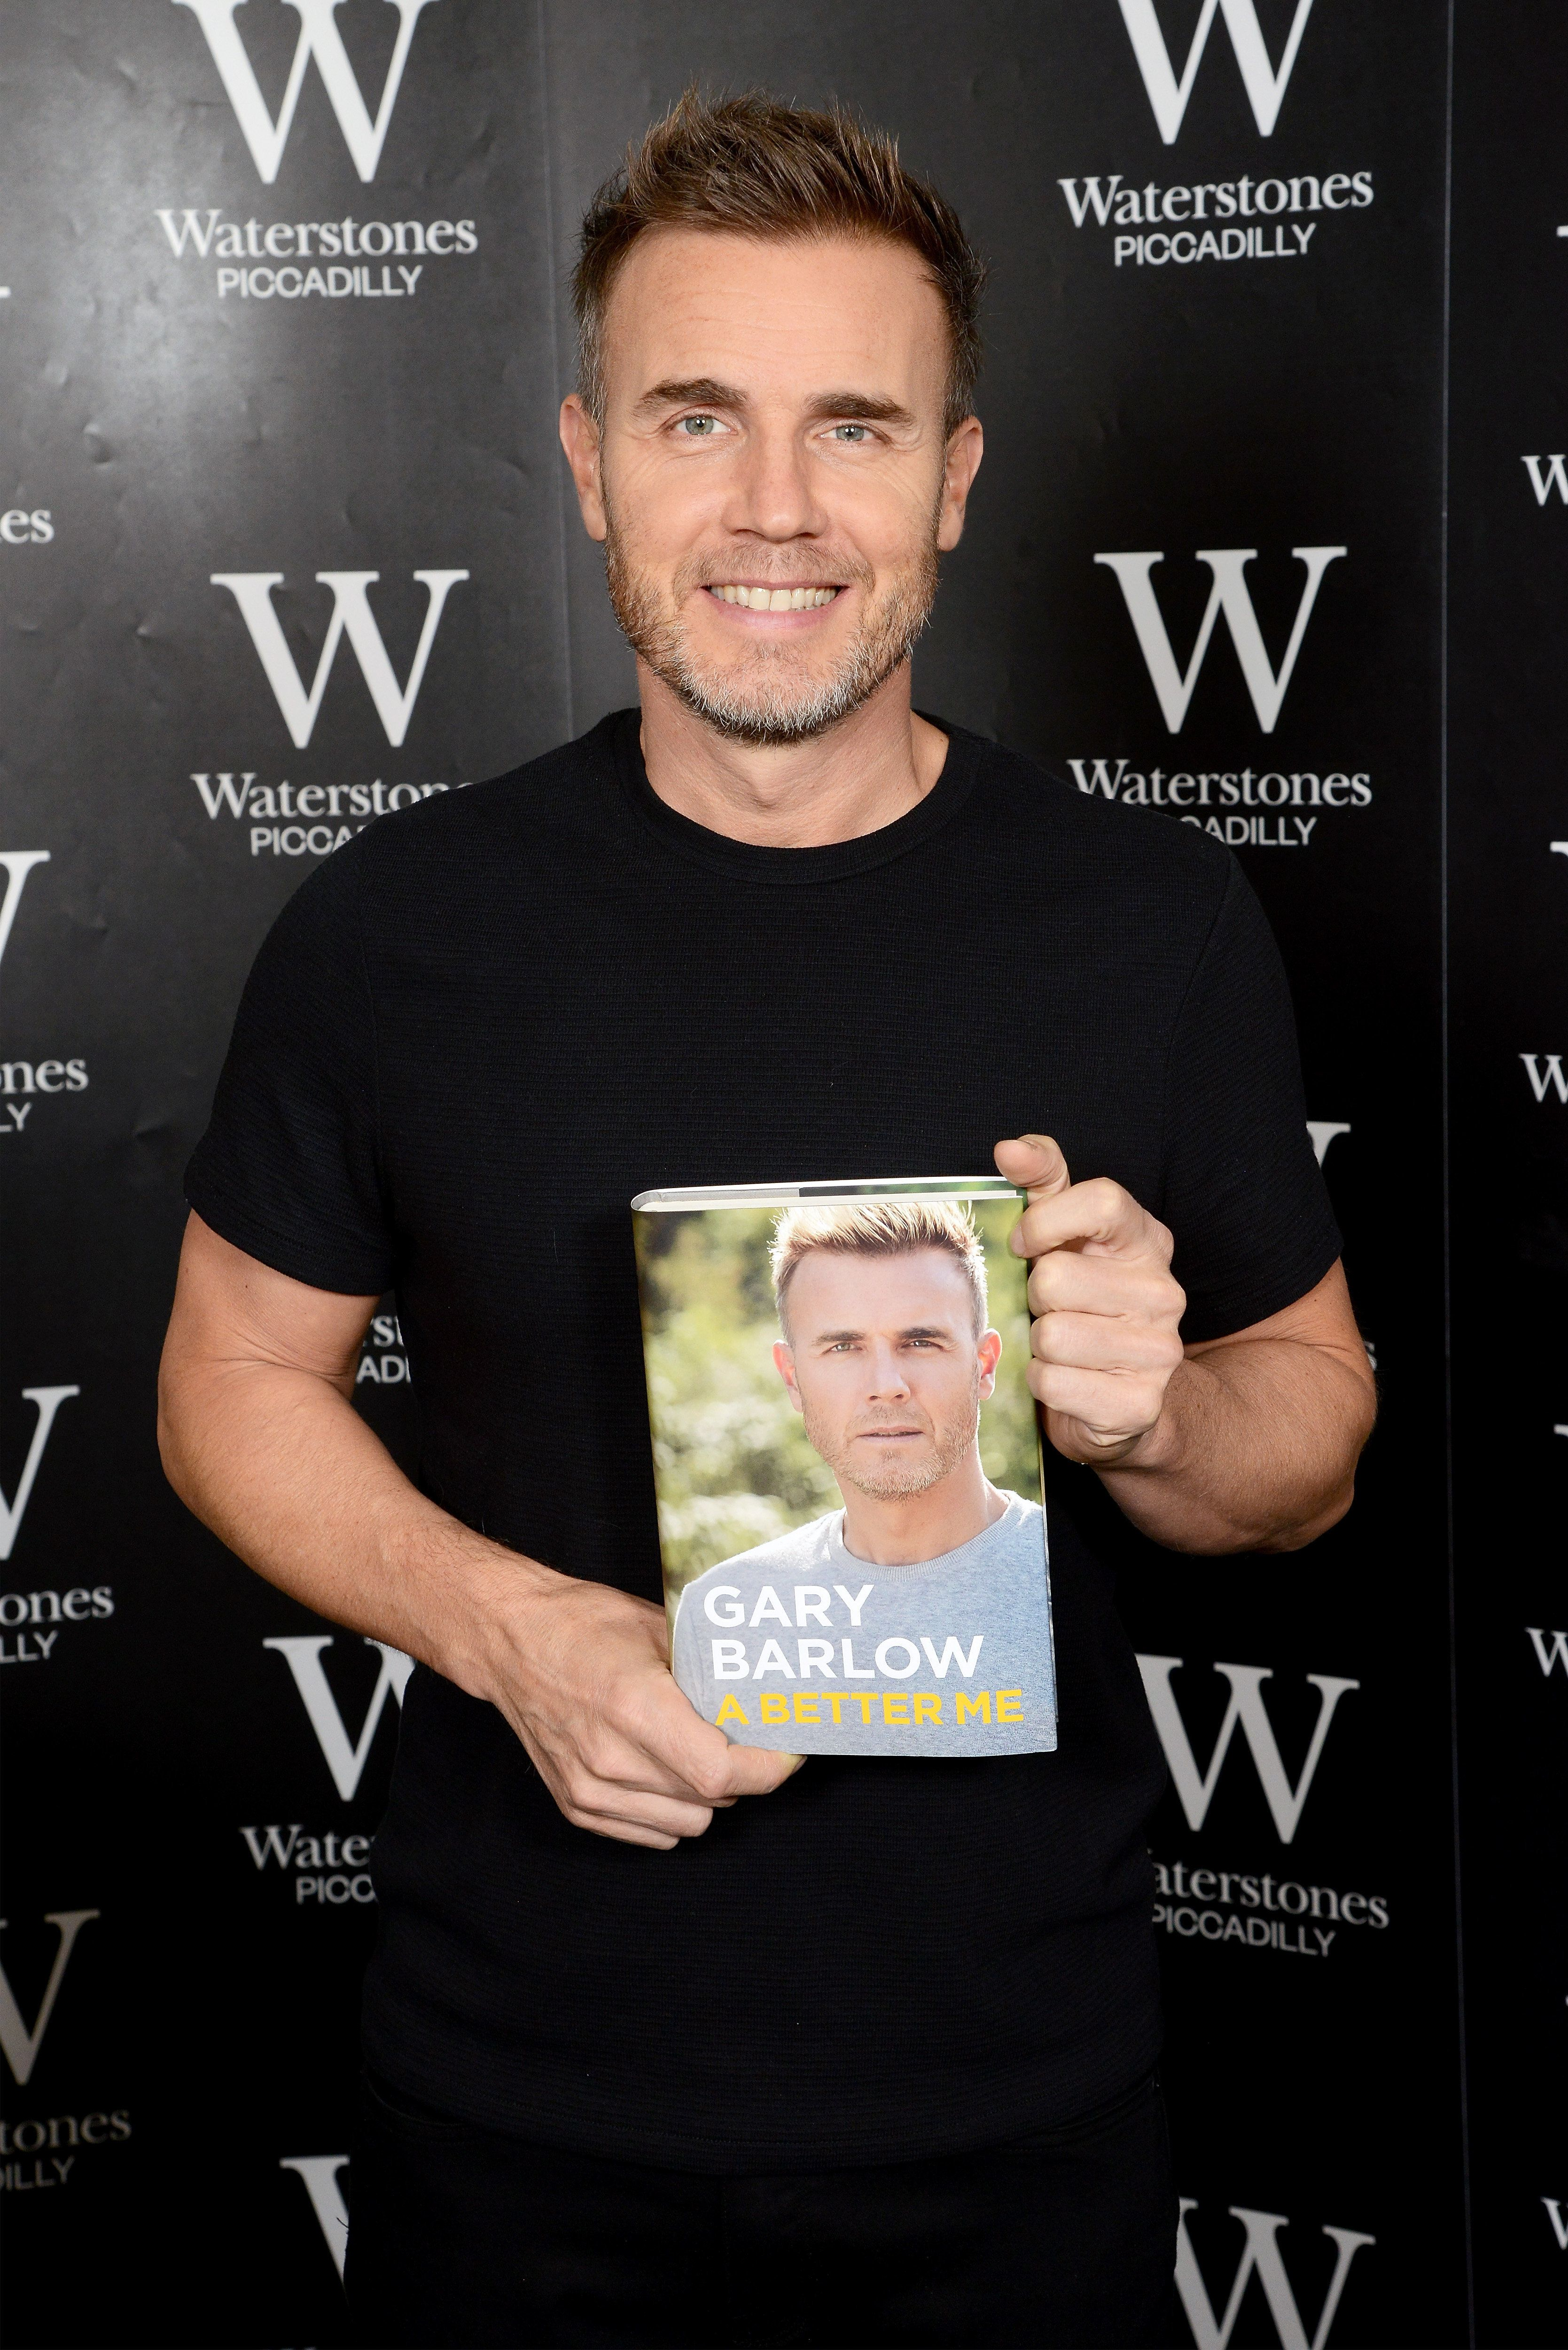 Gary Barlow Says He Was Warned 'X Factor' Bosses Would 'Throw Him Under The